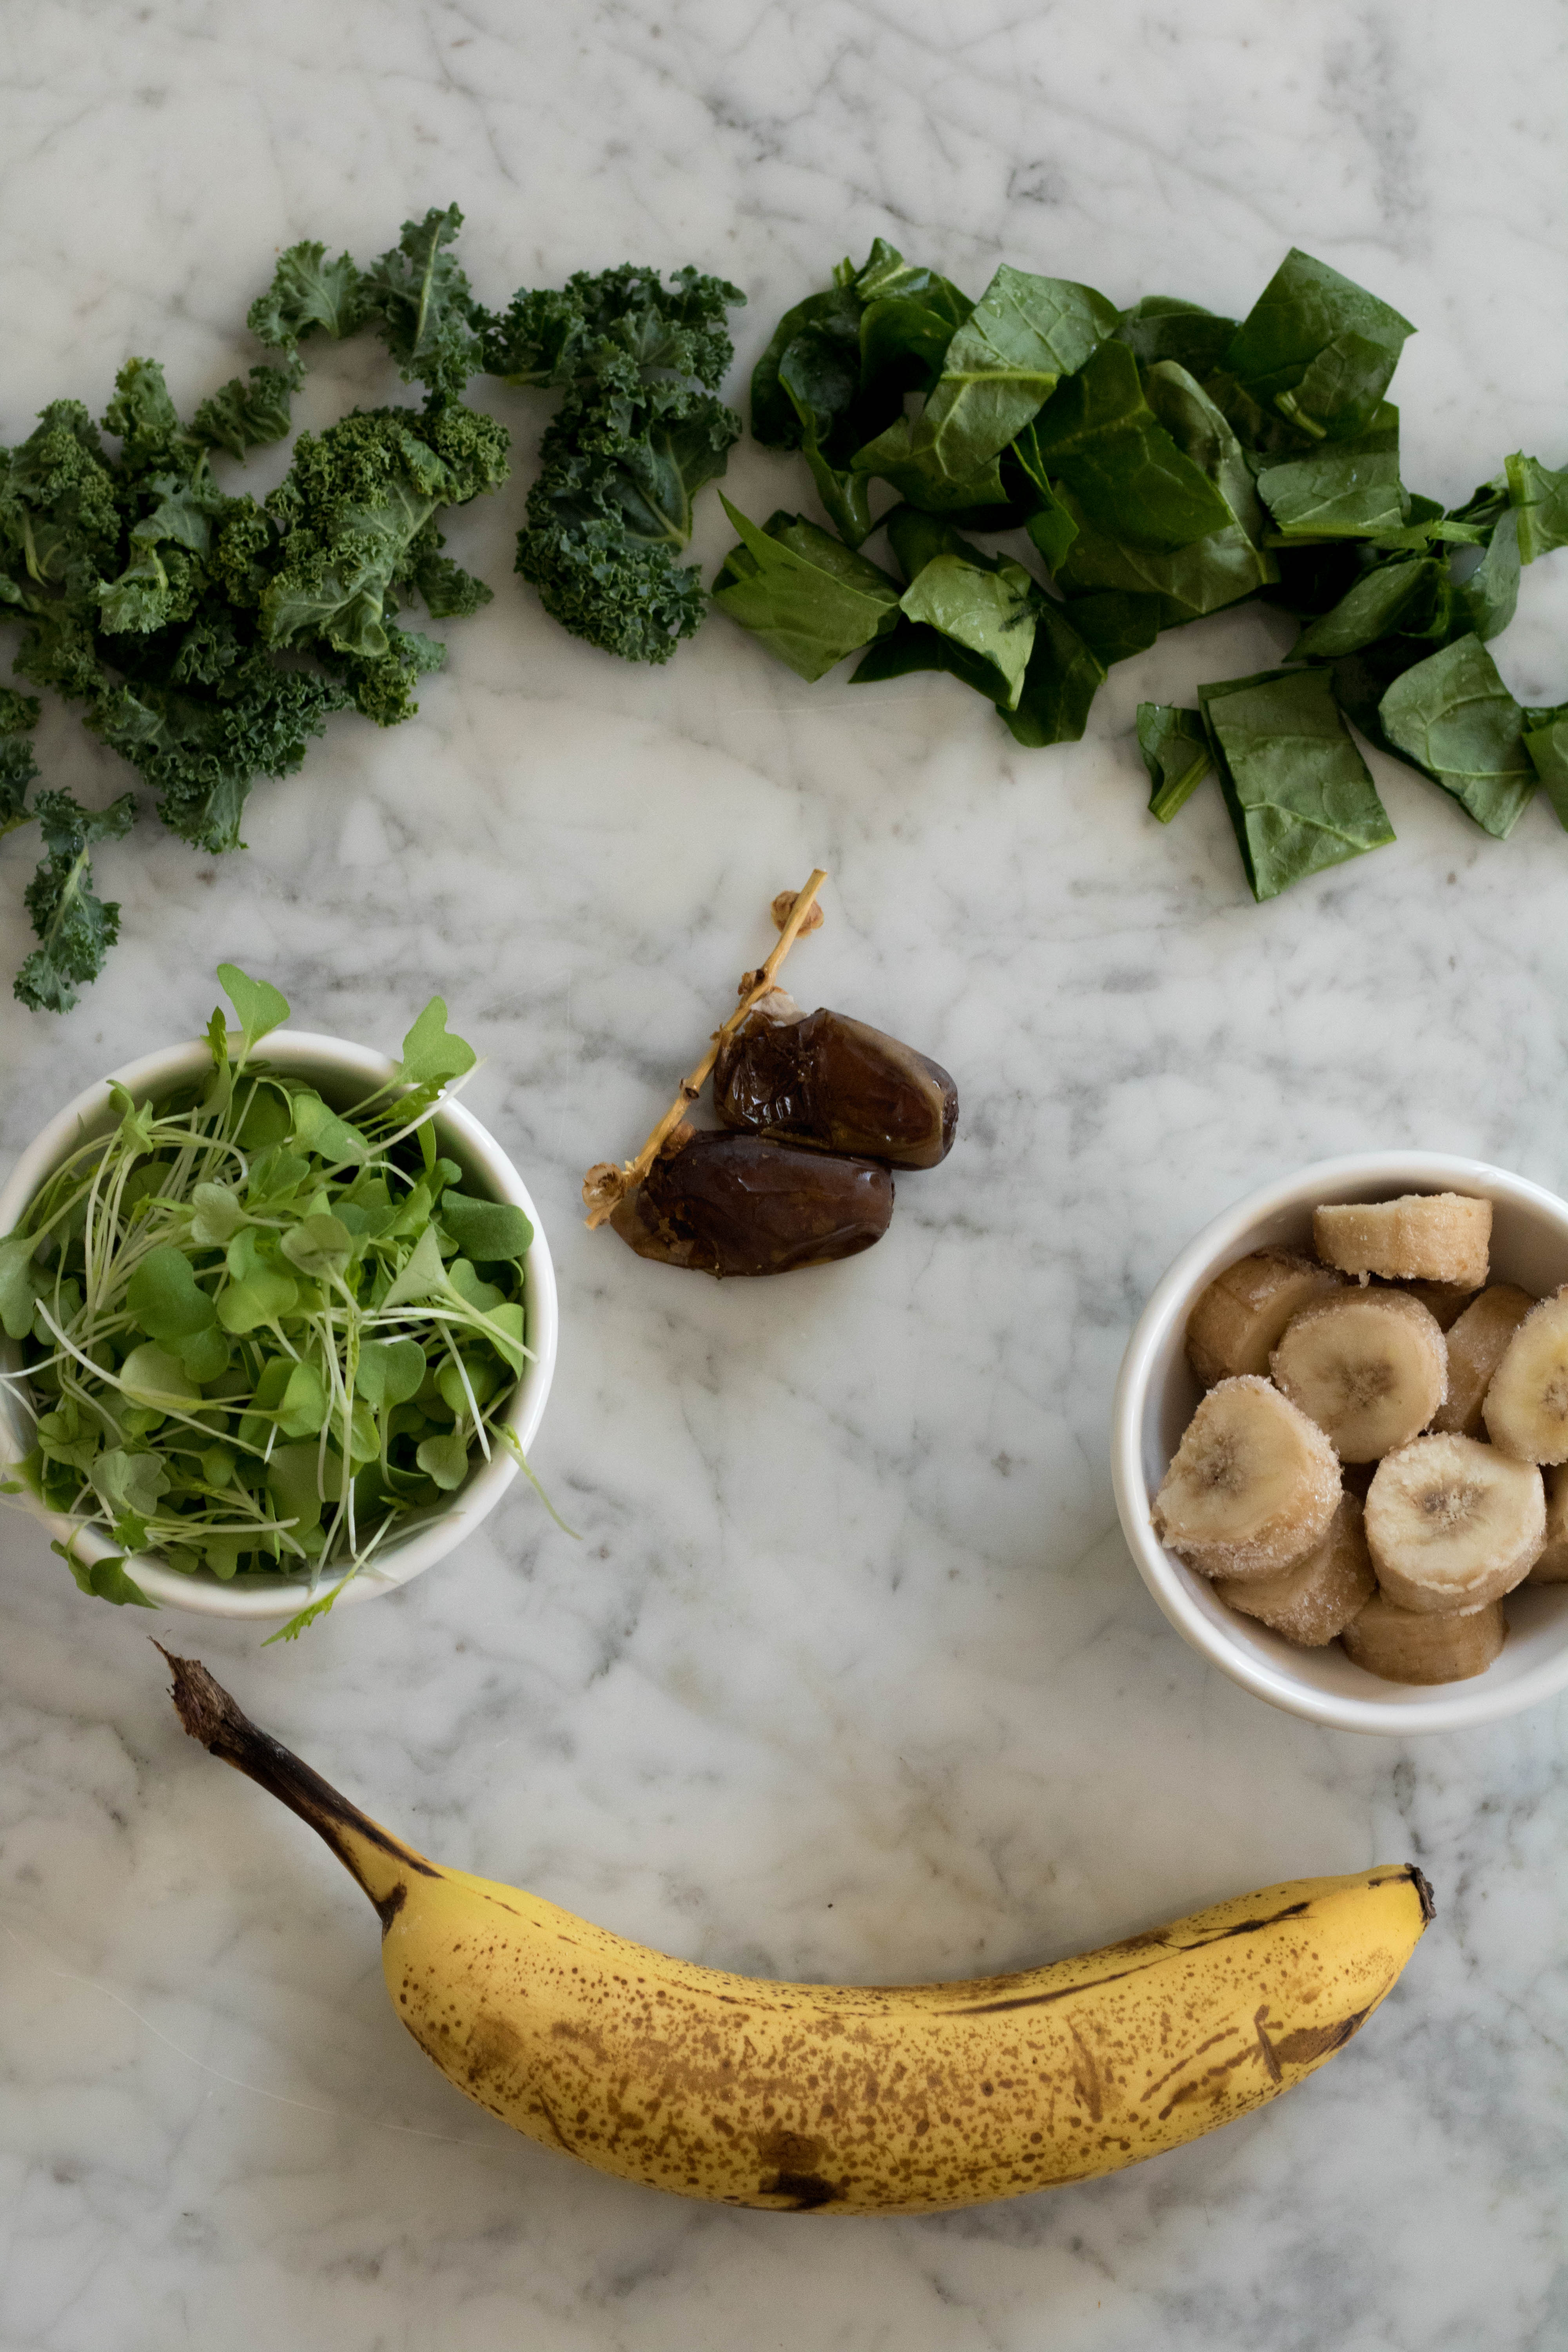 Ingredients for the Kale and Spinach Smoothie recipe